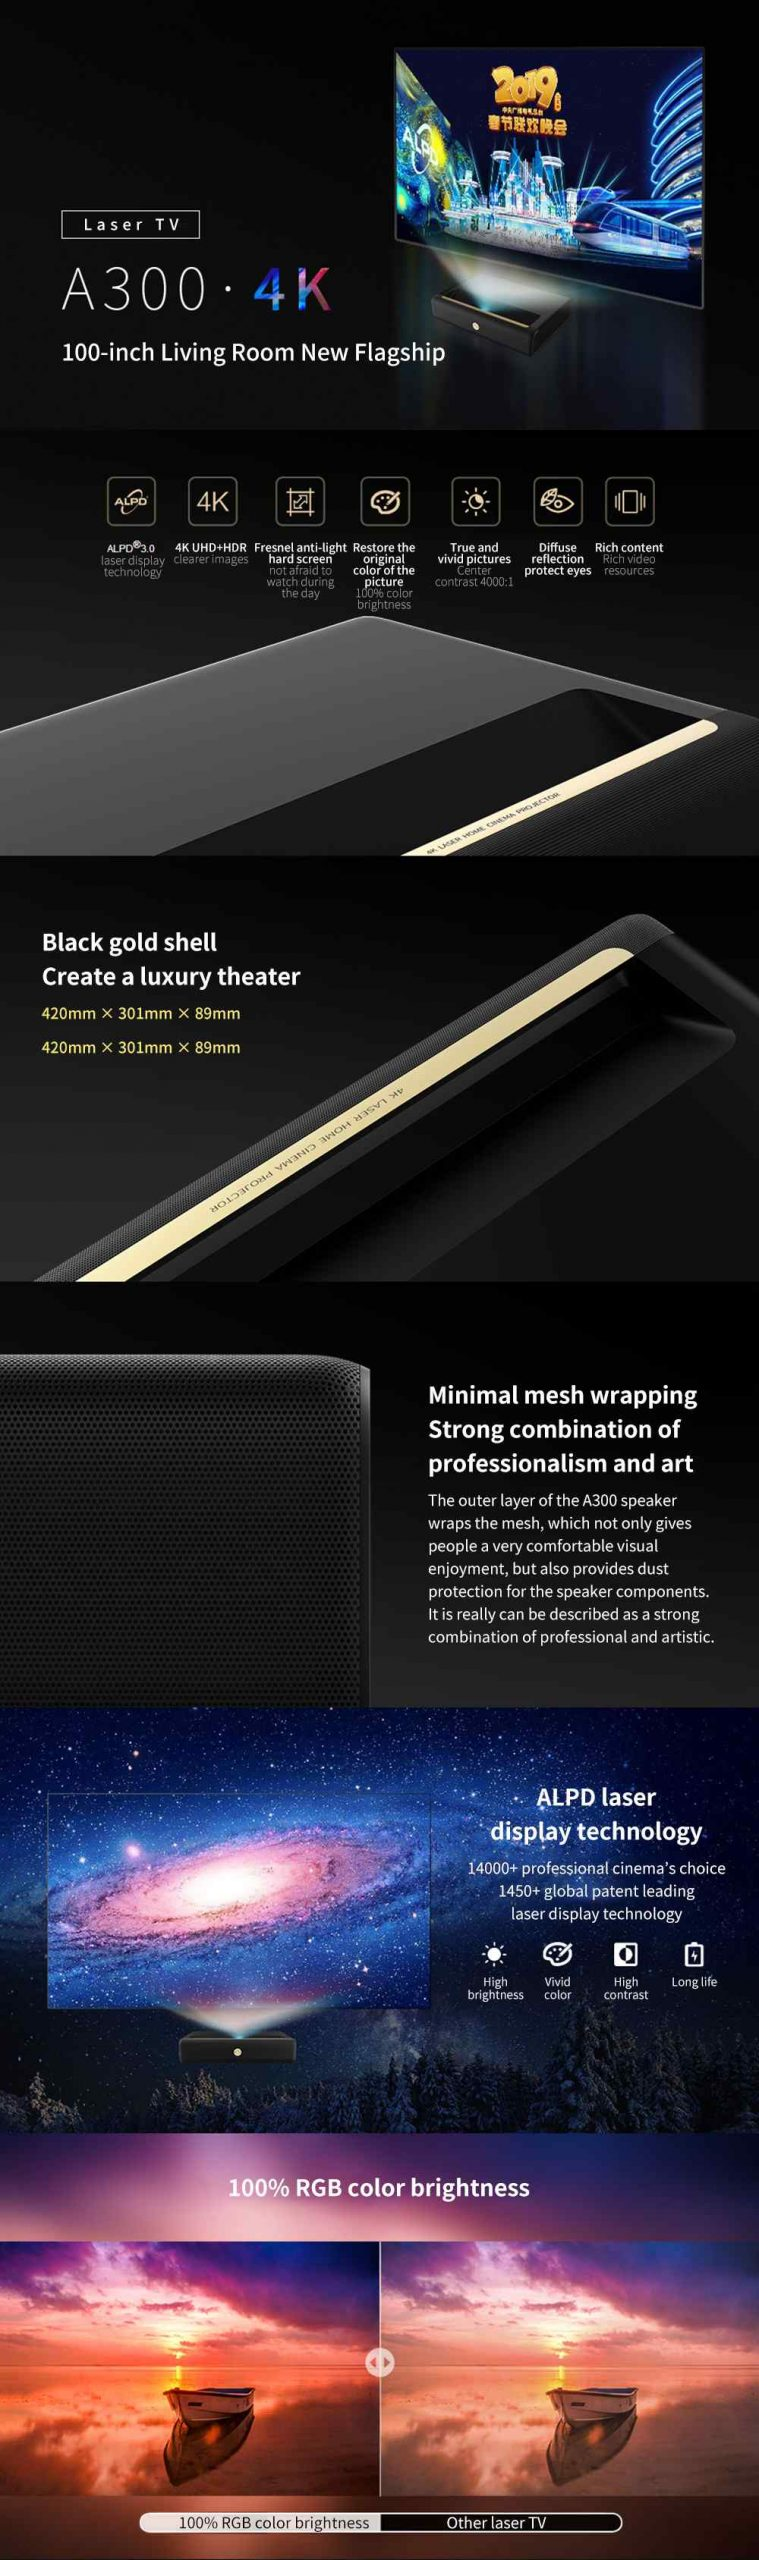 4K Ultra Short Throw Laser Projector 9000 ANSI Lumens 4000:1 Contrast Ratio Support HDR Voice Control Cinema Theater Projector